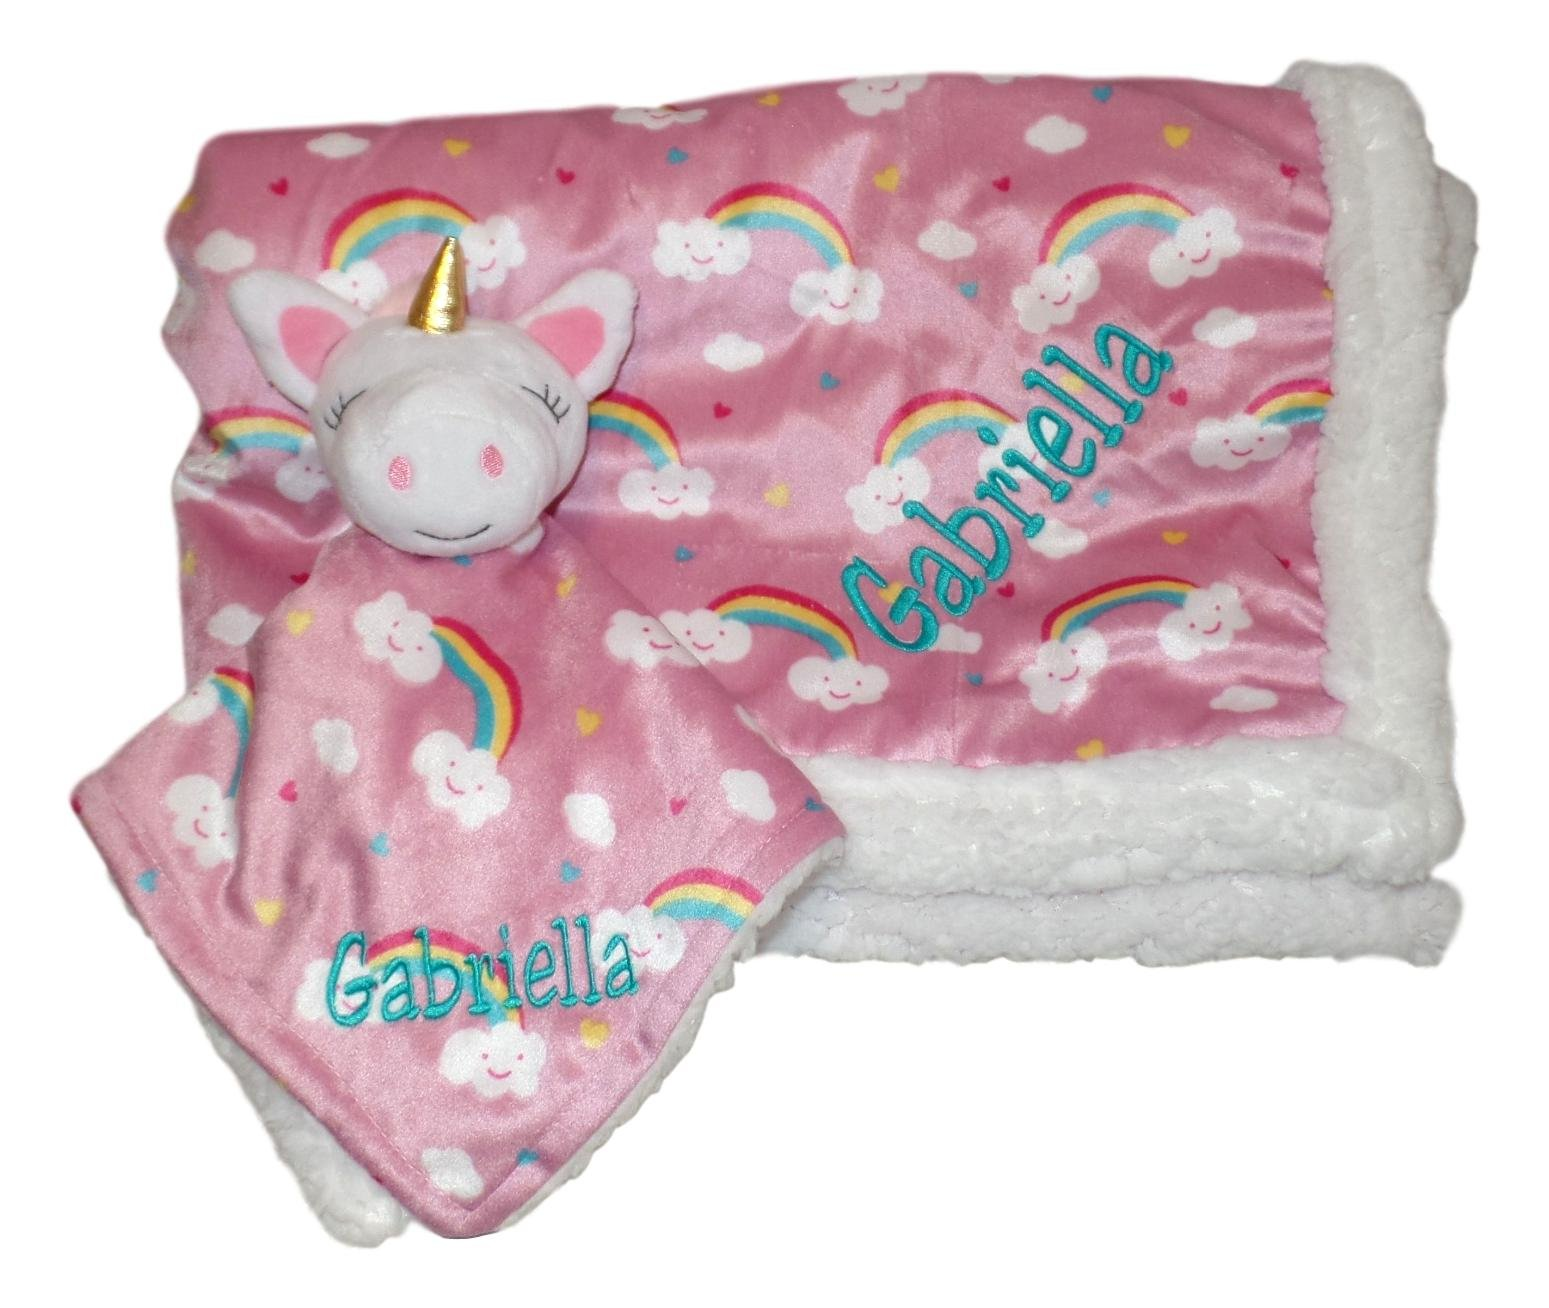 Plush Custom Embroidery Name Baby Blanket (30 x 40 inch) With Lovey Blanket - Excellent Gift Idea (Custom Embroidery Pink Unicorn)